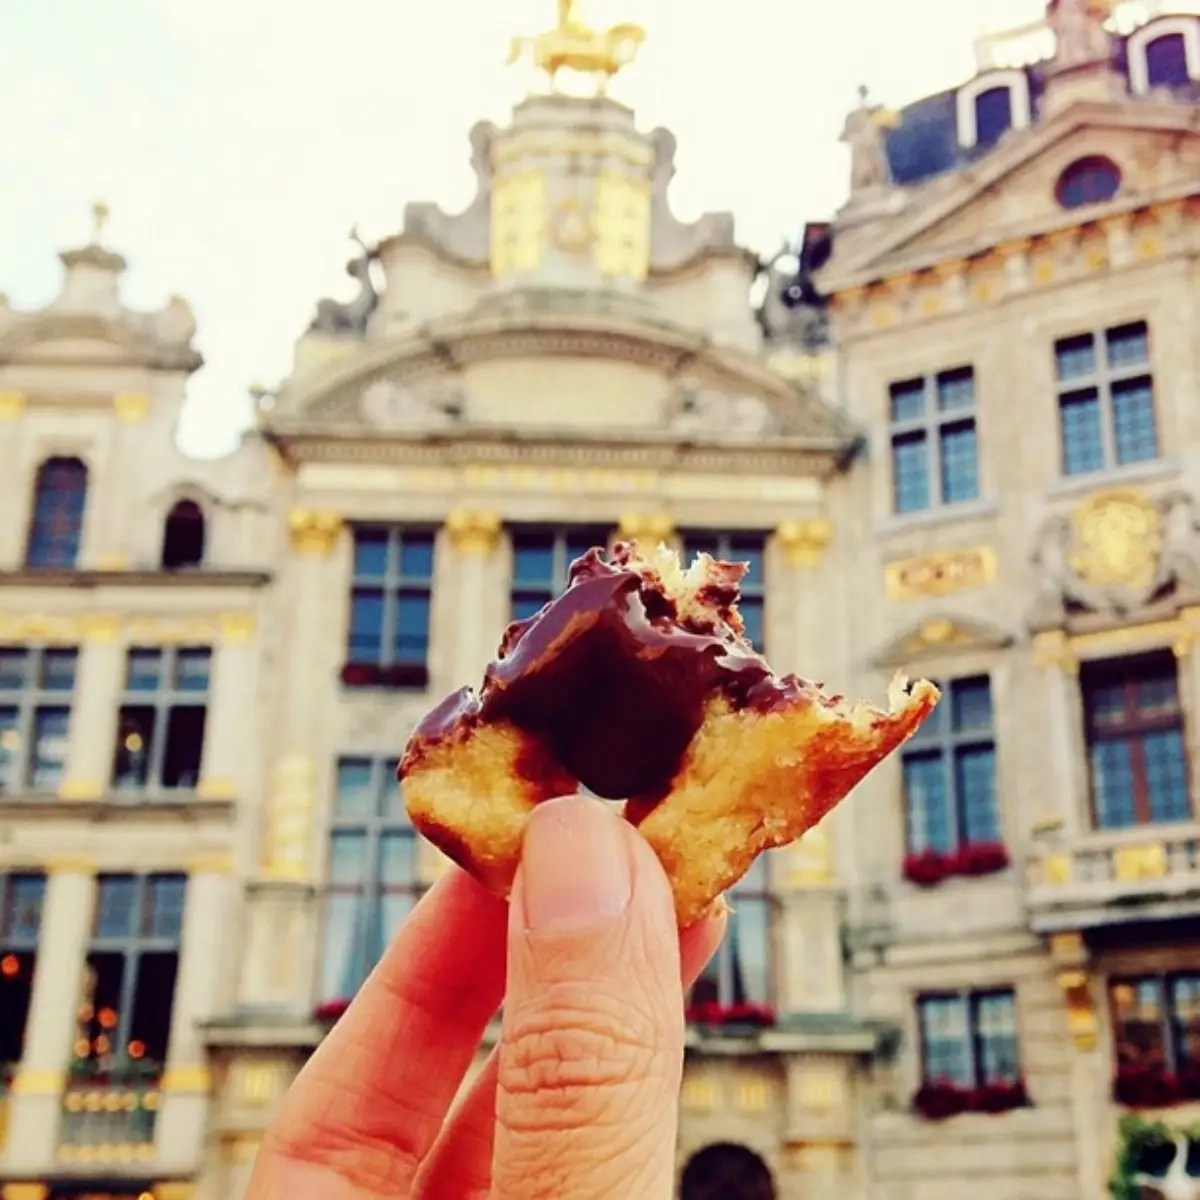 Belgian waffles (with Nutella!) in front of my favorite building, the Grand Place in Brussels, Belgium.